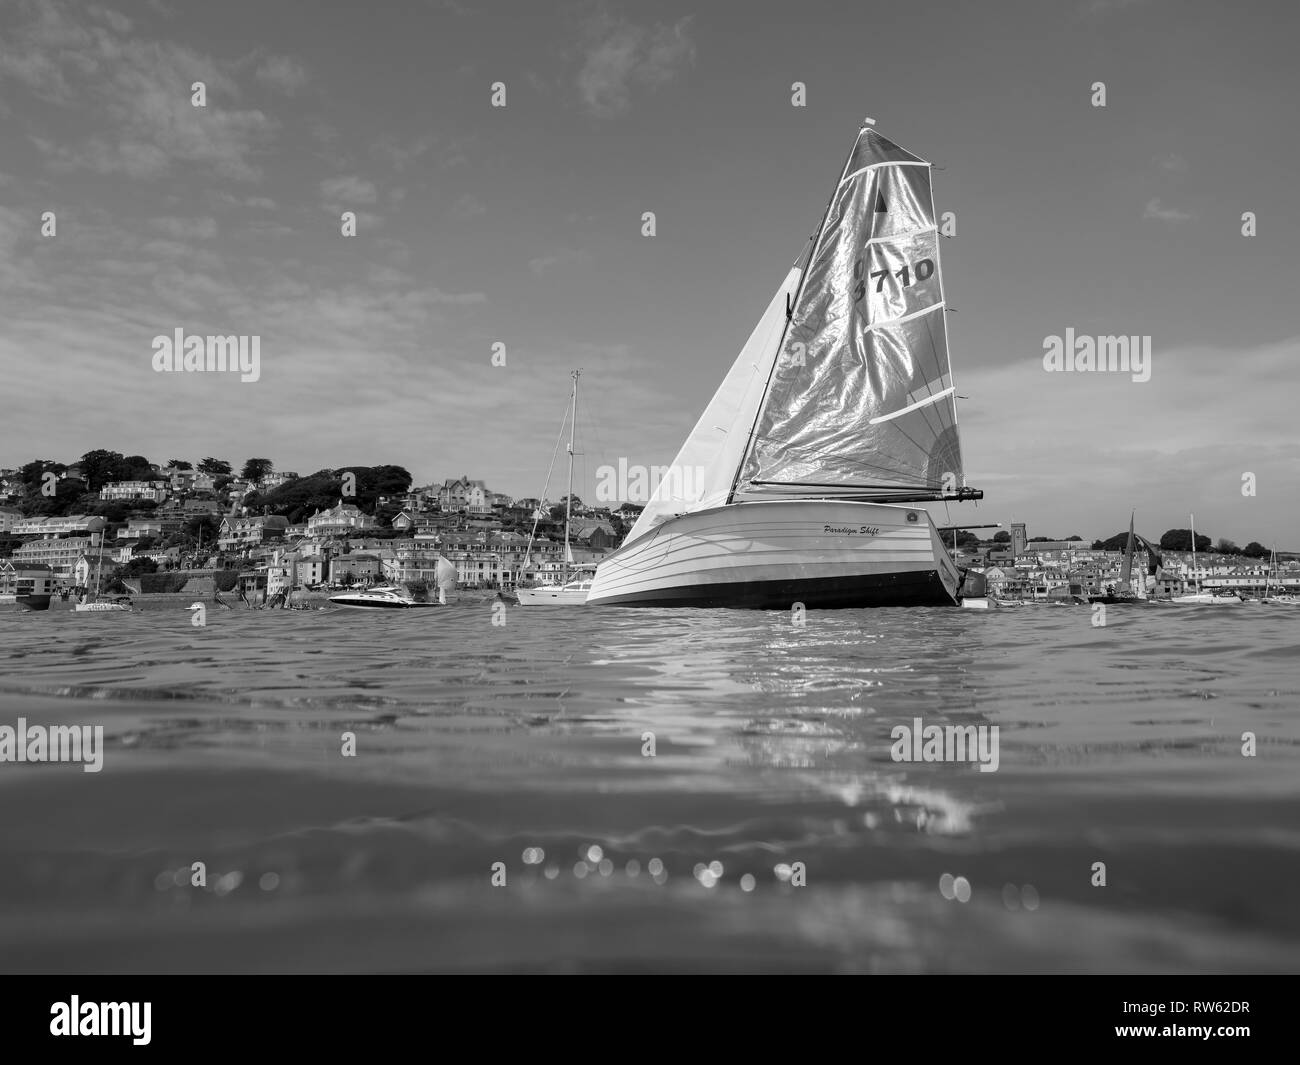 Salcombe is a hub of sailing activity in the summer. This shot was taken with a Nauticam underwater housing as the yachts sailed by. - Stock Image